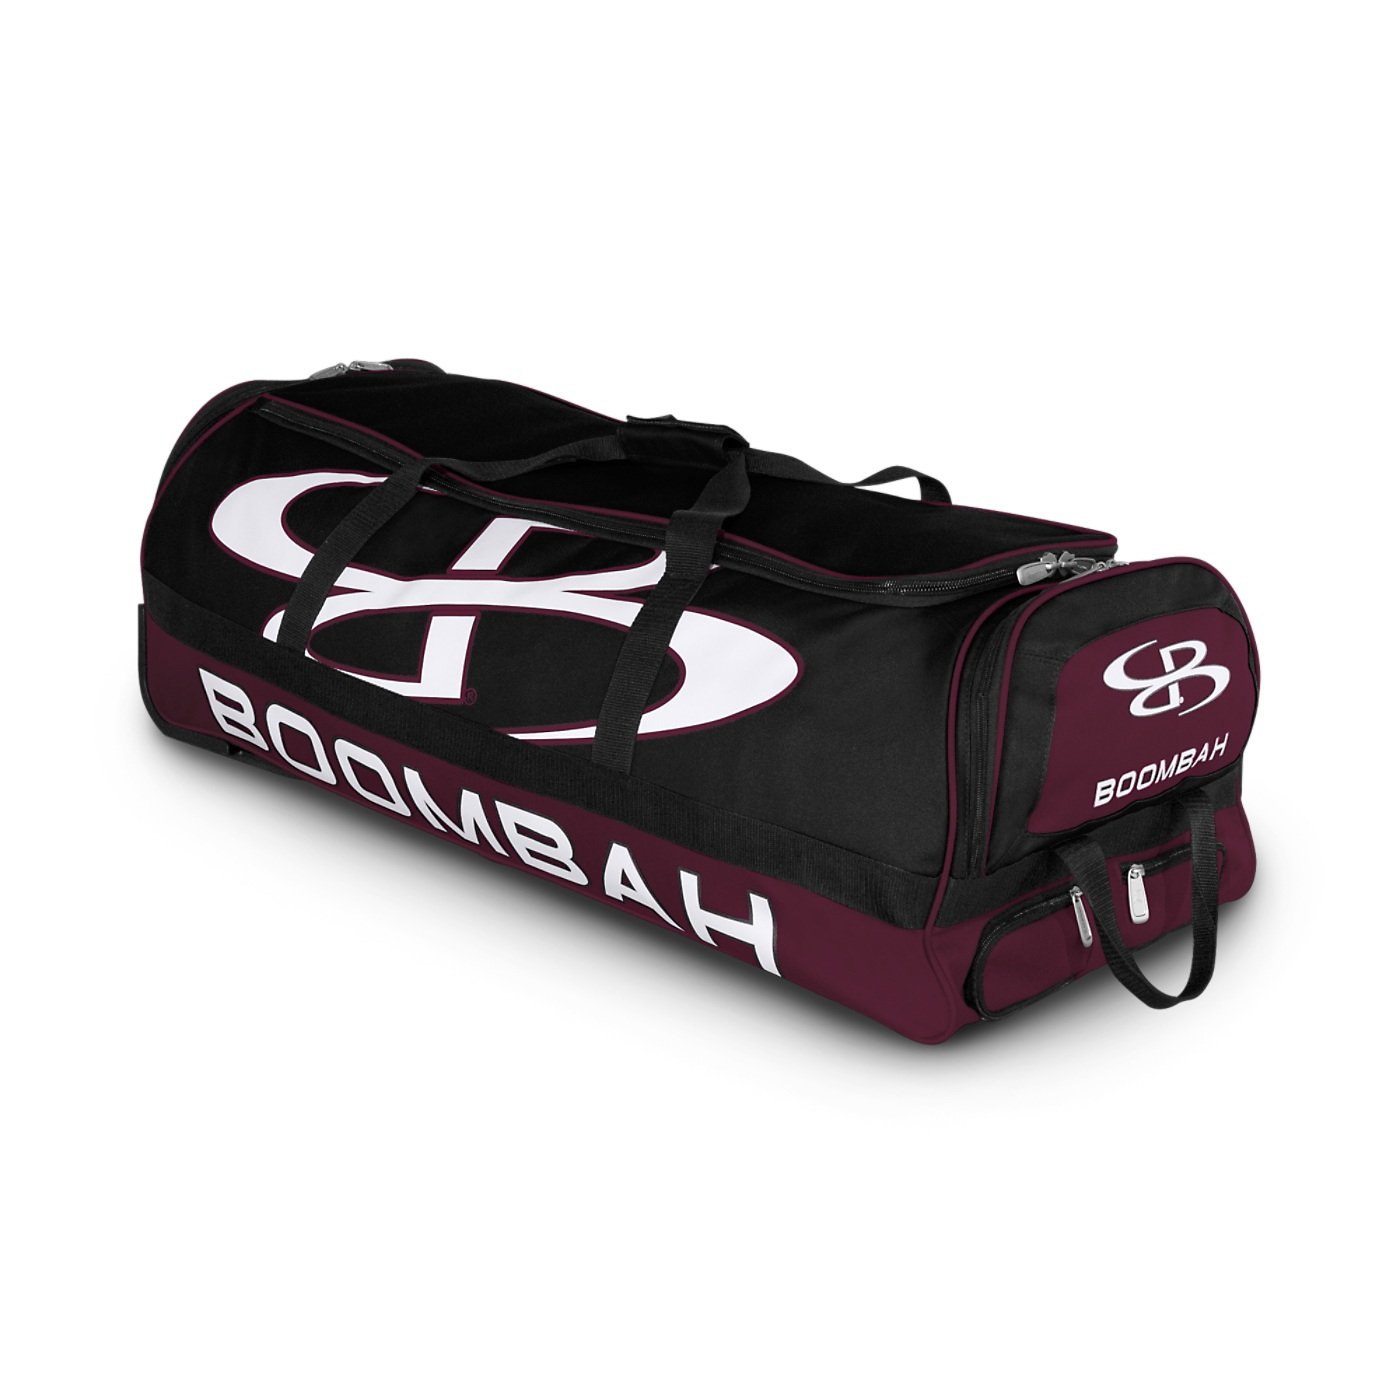 Boombah Brute Rolling Baseball/Softball Bat Bag - 35'' x 15'' x 12-1/2'' - Black/Maroon - Holds 4 Bats and Room for Gear - Wheeled Bag